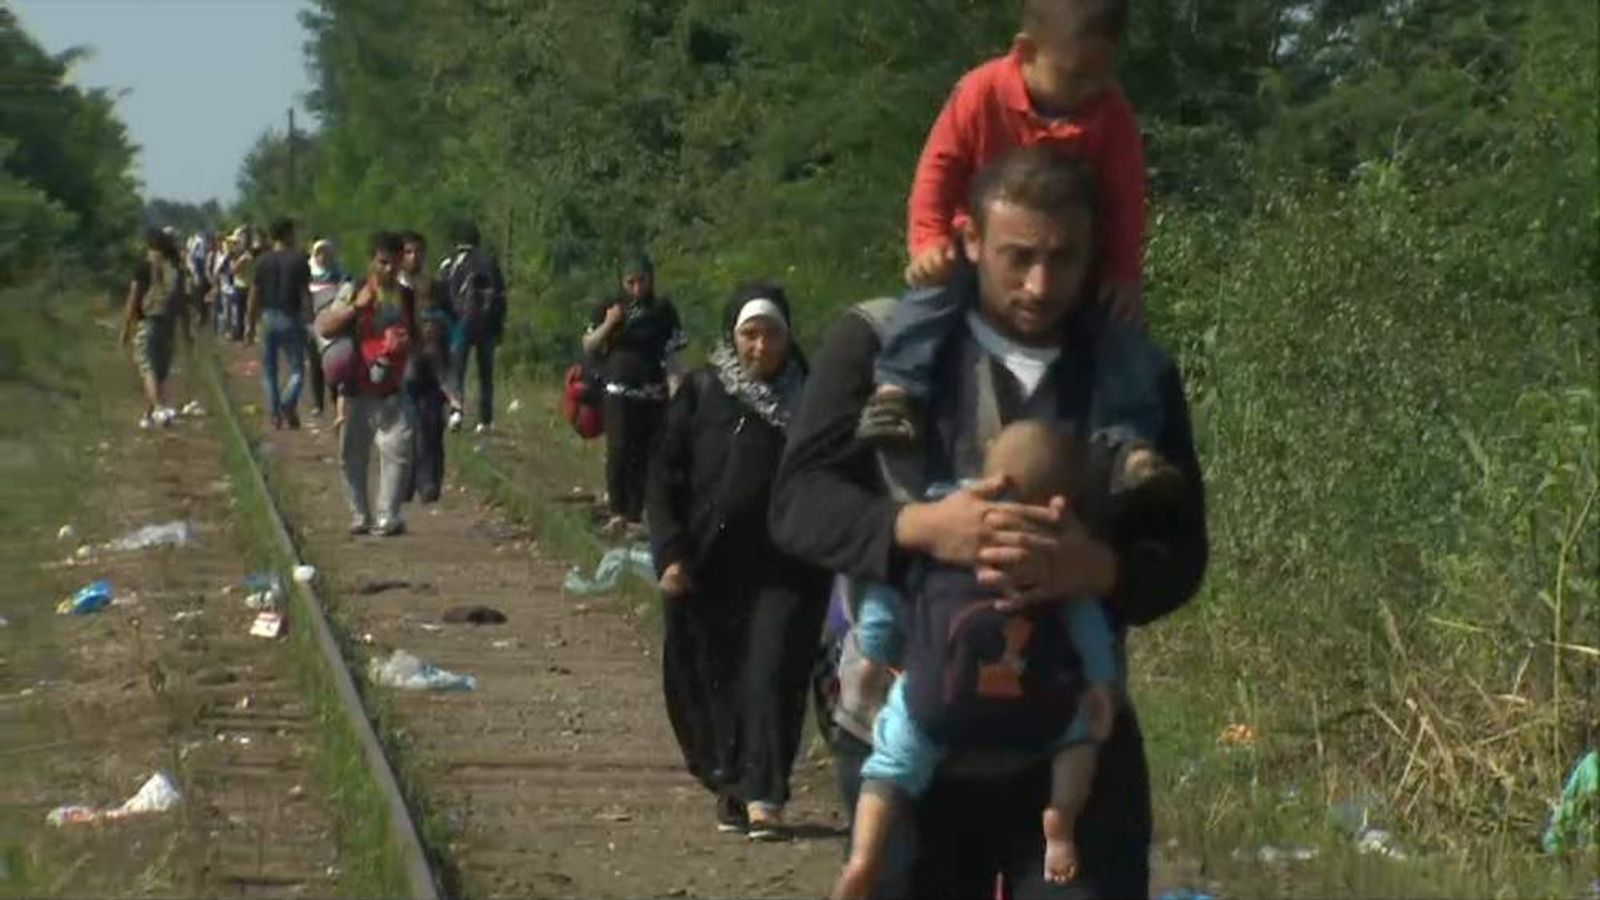 ROSZKE MIGRANTS WALKING